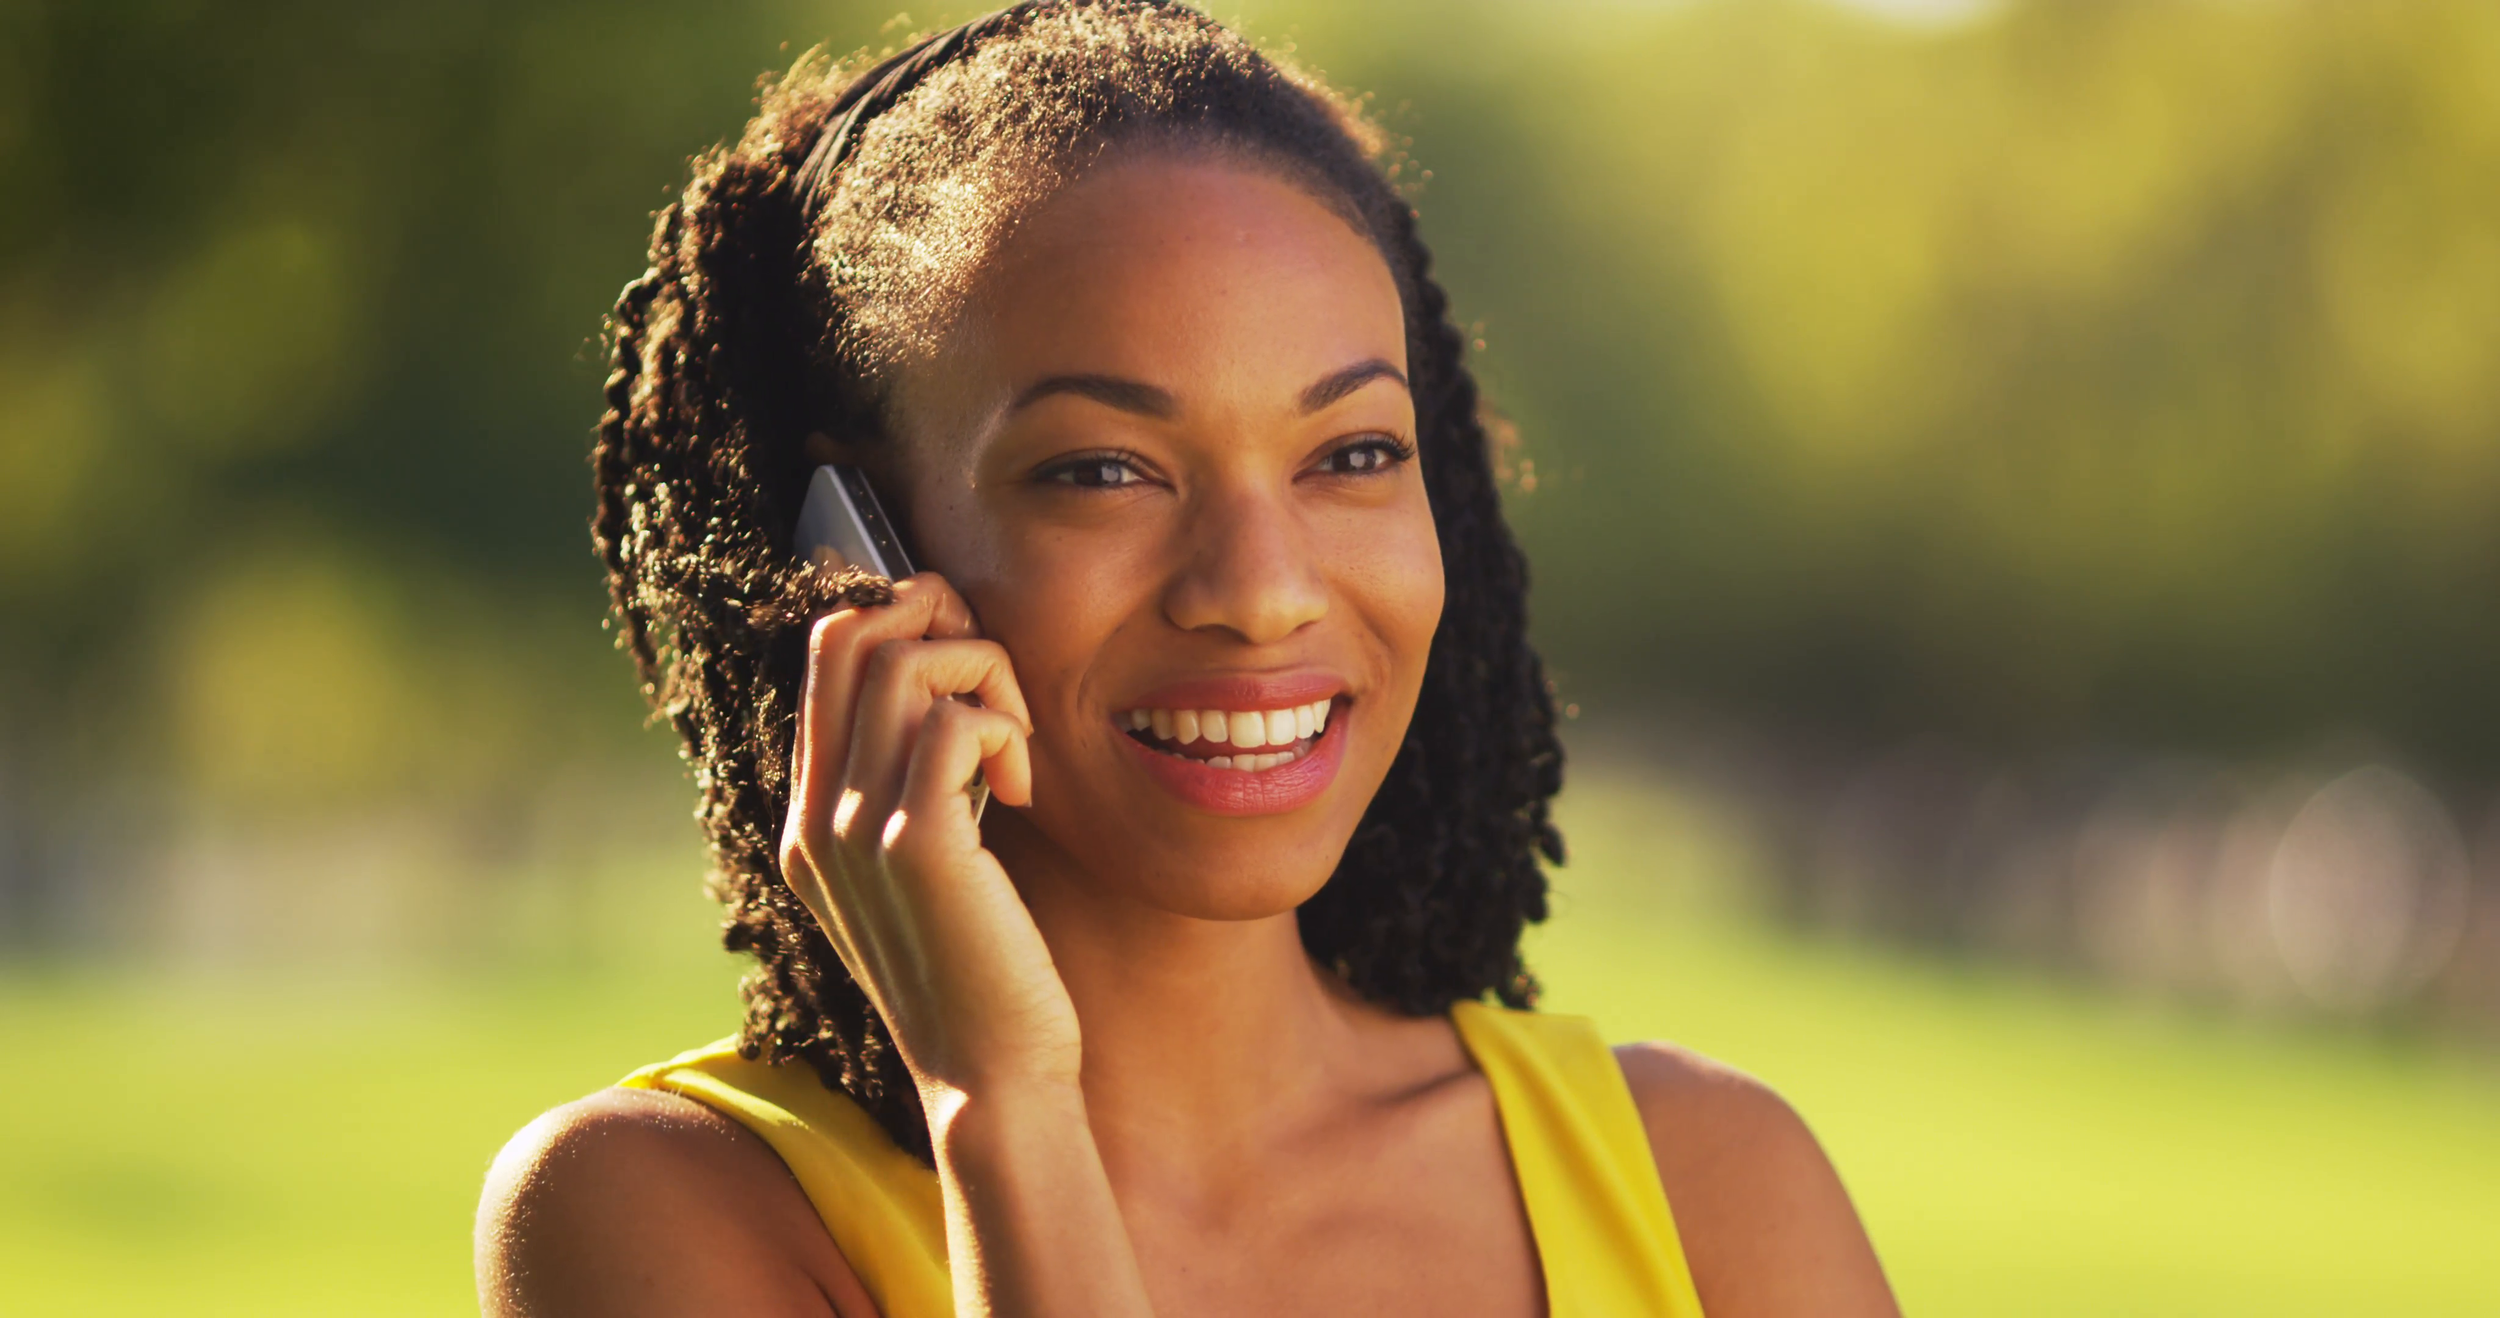 black-woman-talking-on-phone-outdoors_njy3ghrfx__F0000.png